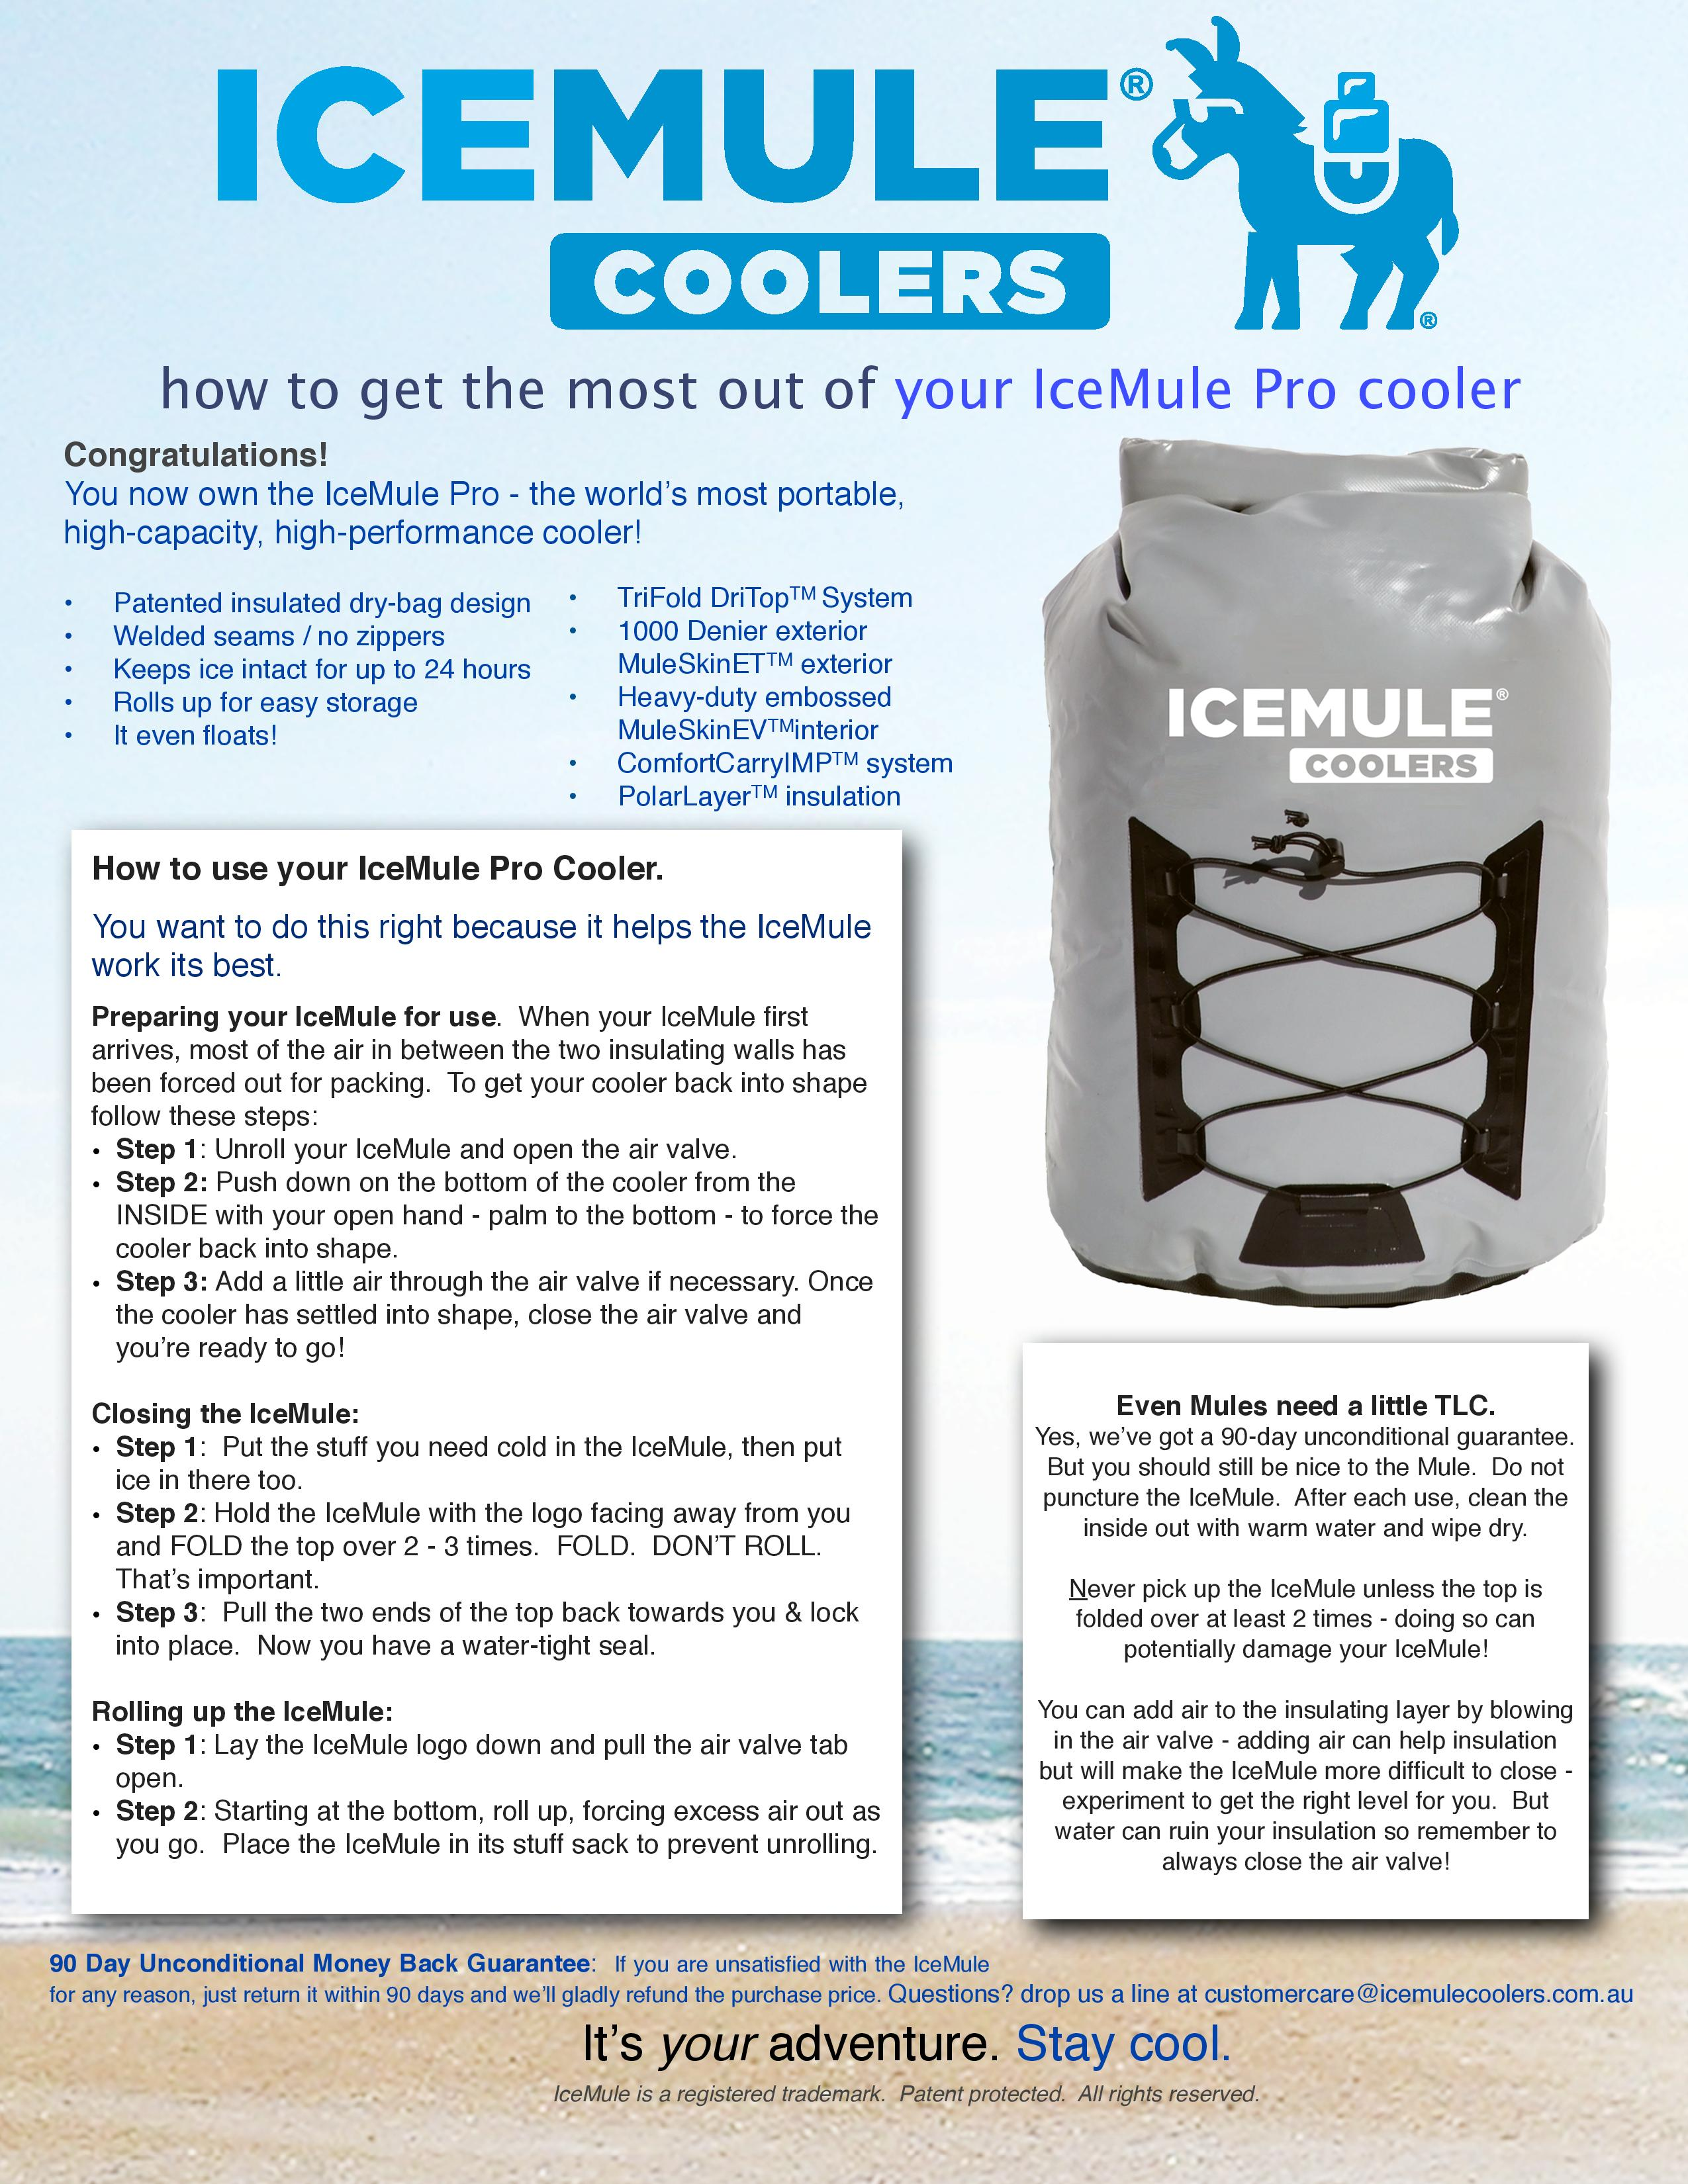 icemule-pro-cooler-owner-s-sheet-2014vf-au-page-001.jpg